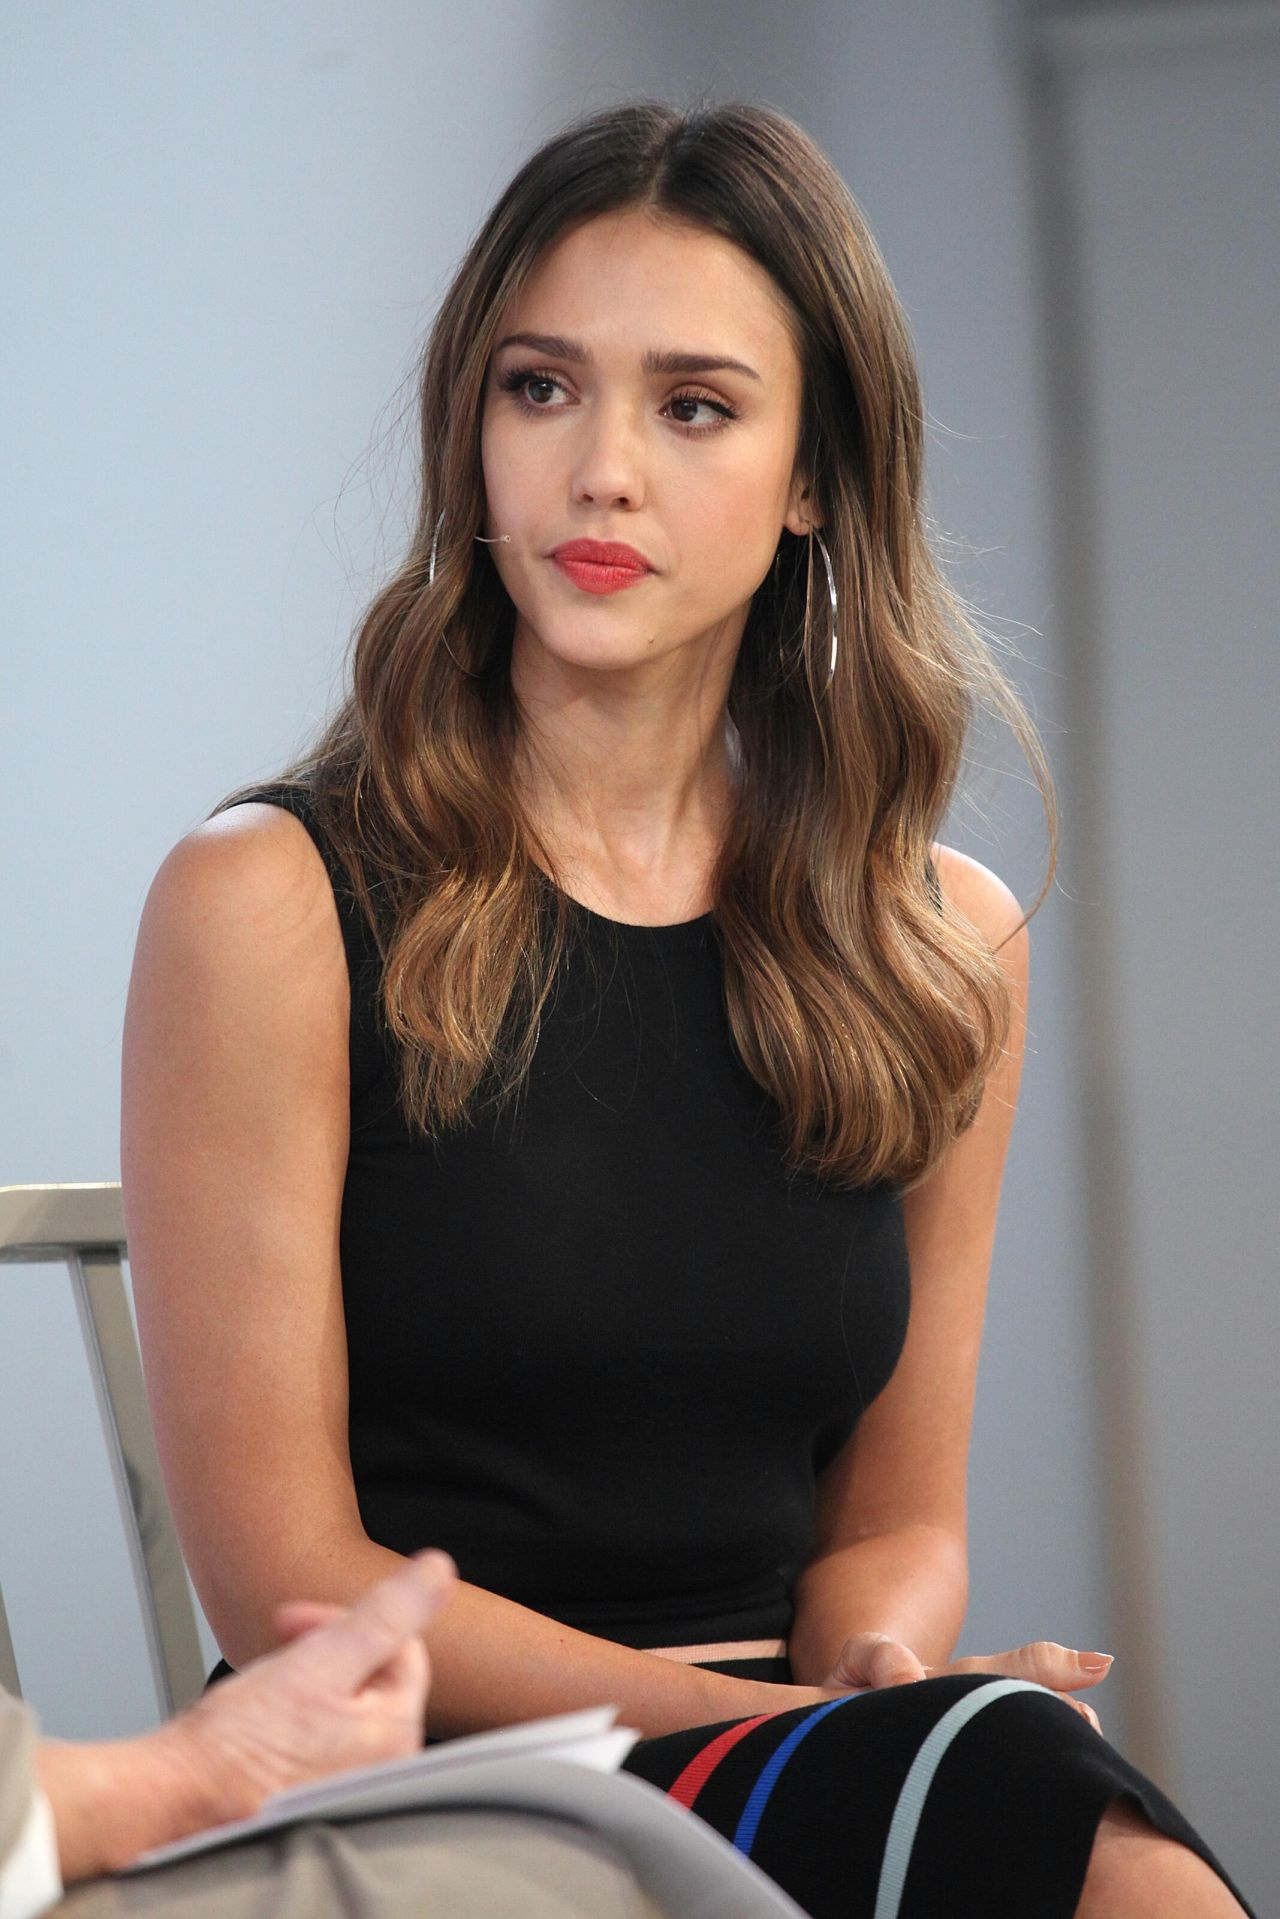 http://celebmafia.com/wp-content/uploads/2016/10/jessica-alba-martha-stewart-made-in-america-ny-summit-in-new-york-city-10-22-2016-11.jpg